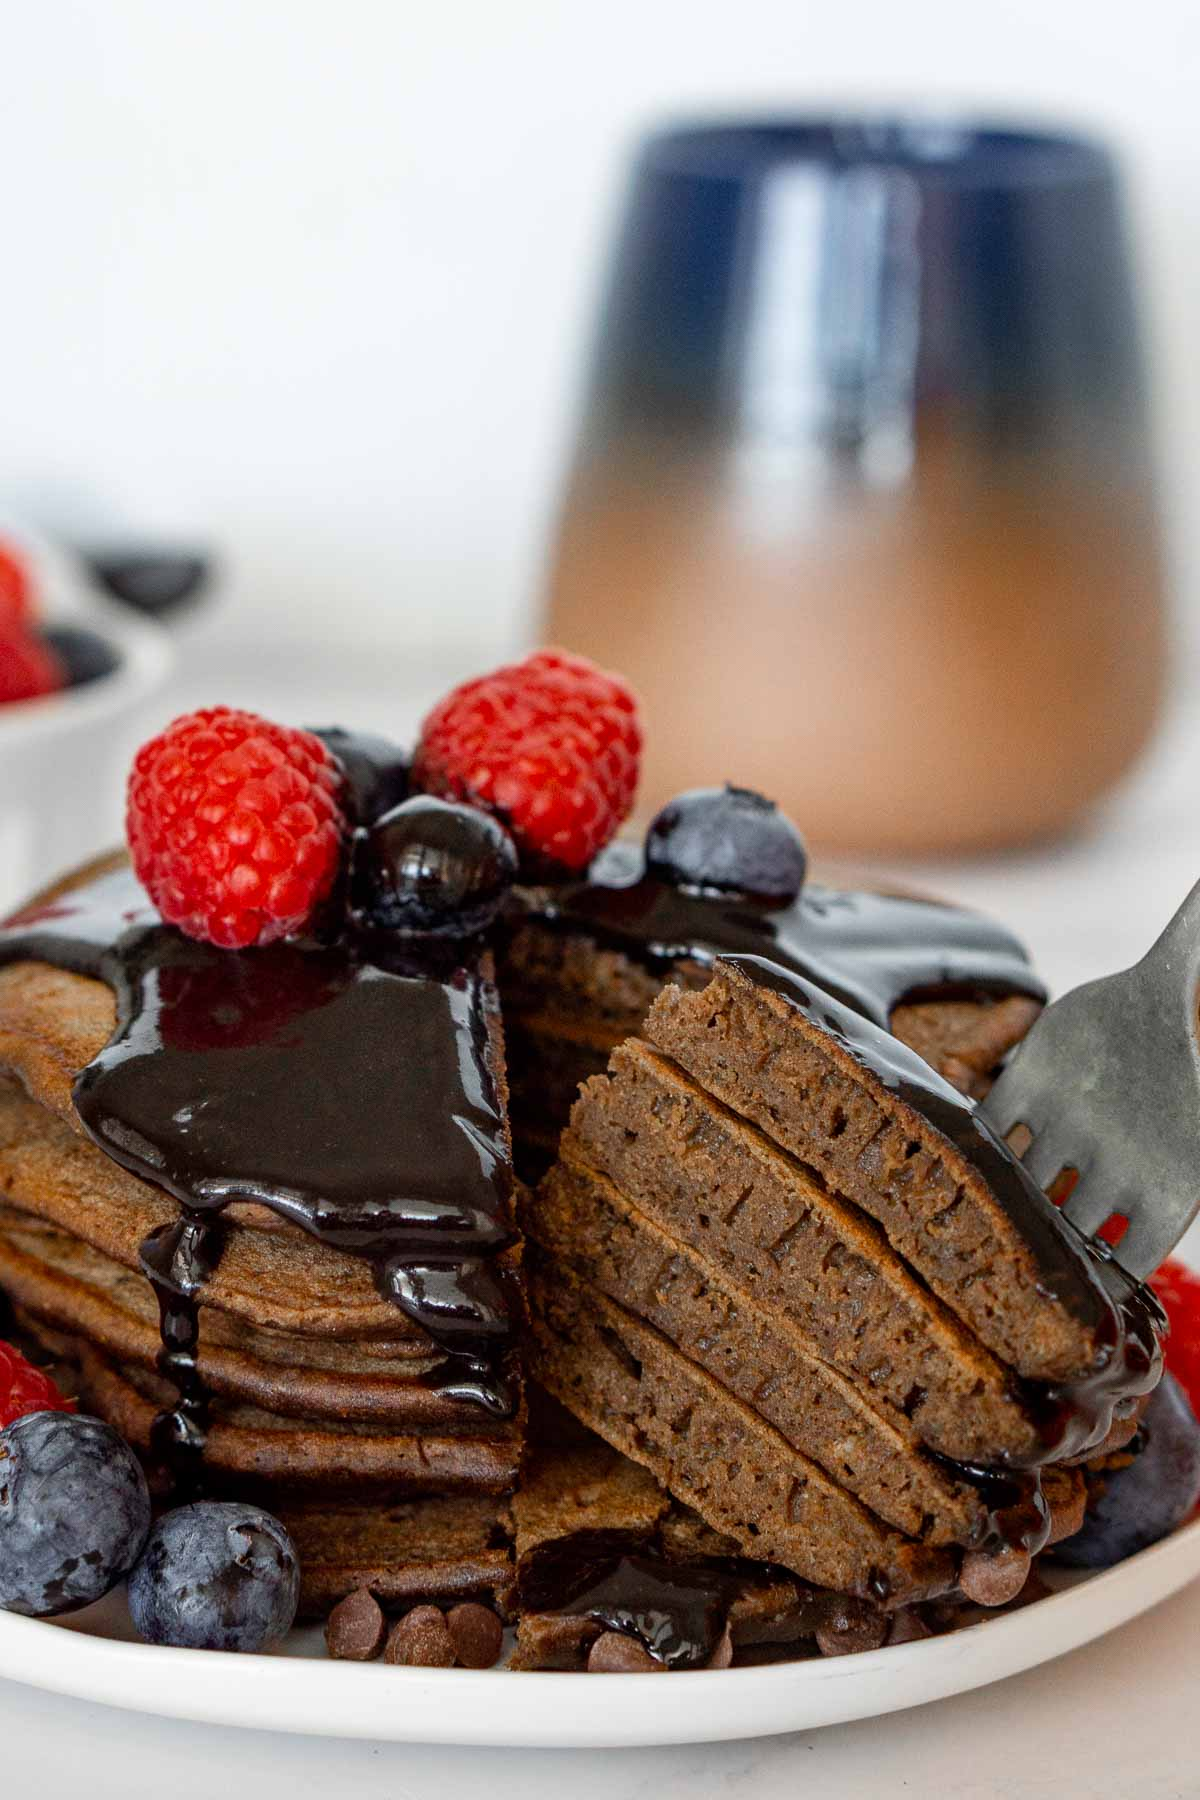 Stack of chocolate protein pancakes cut open.